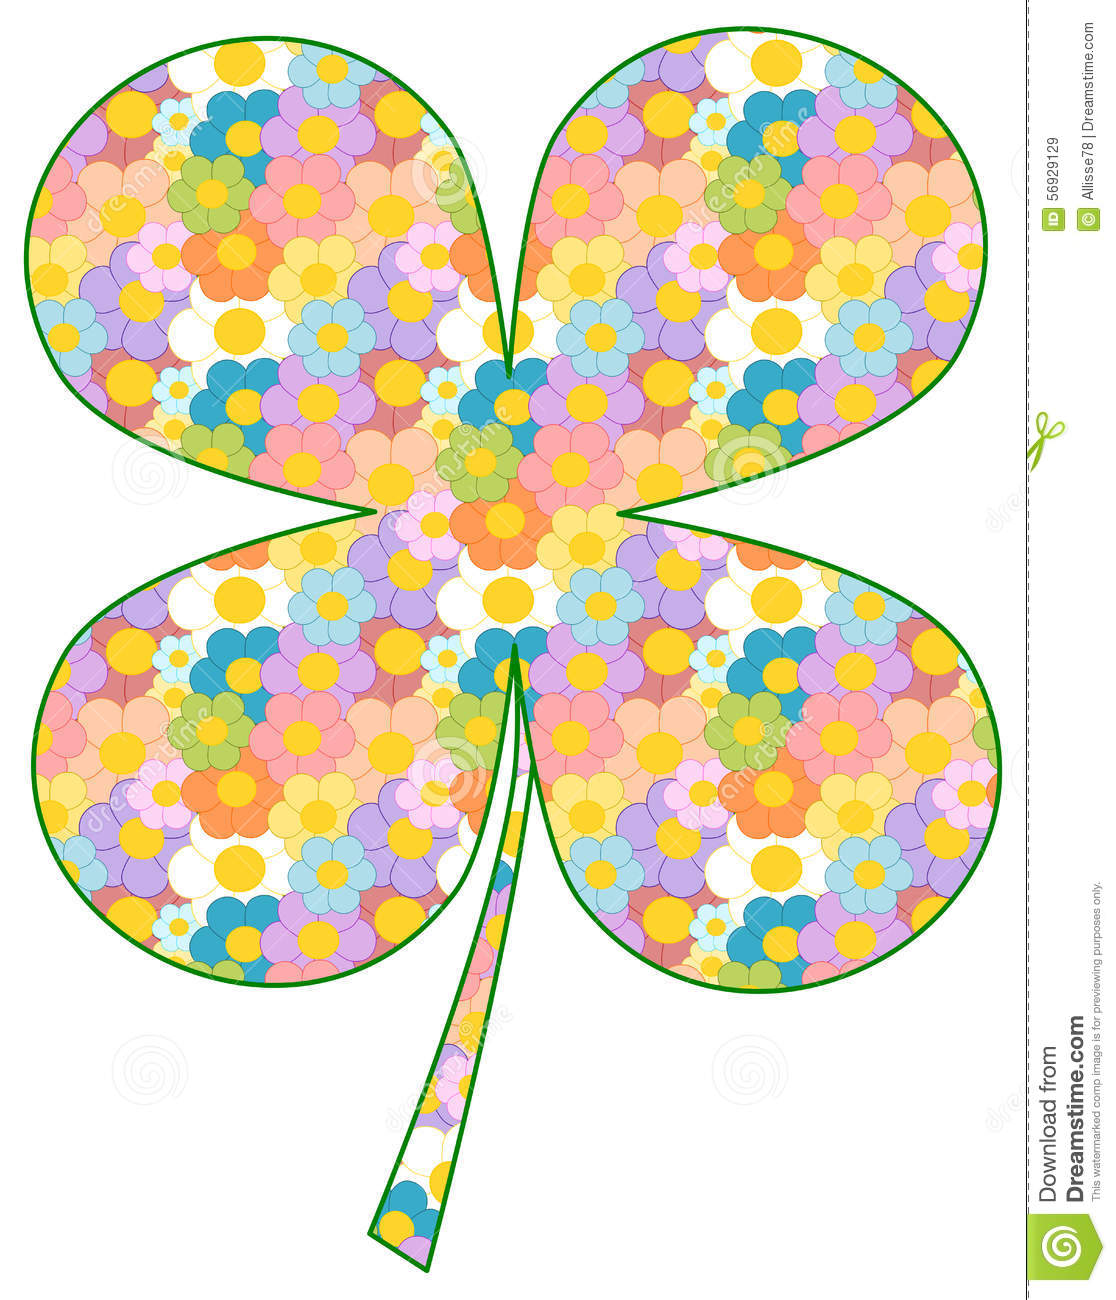 colorful four leaf clover patterned with cartoon daisy flowers